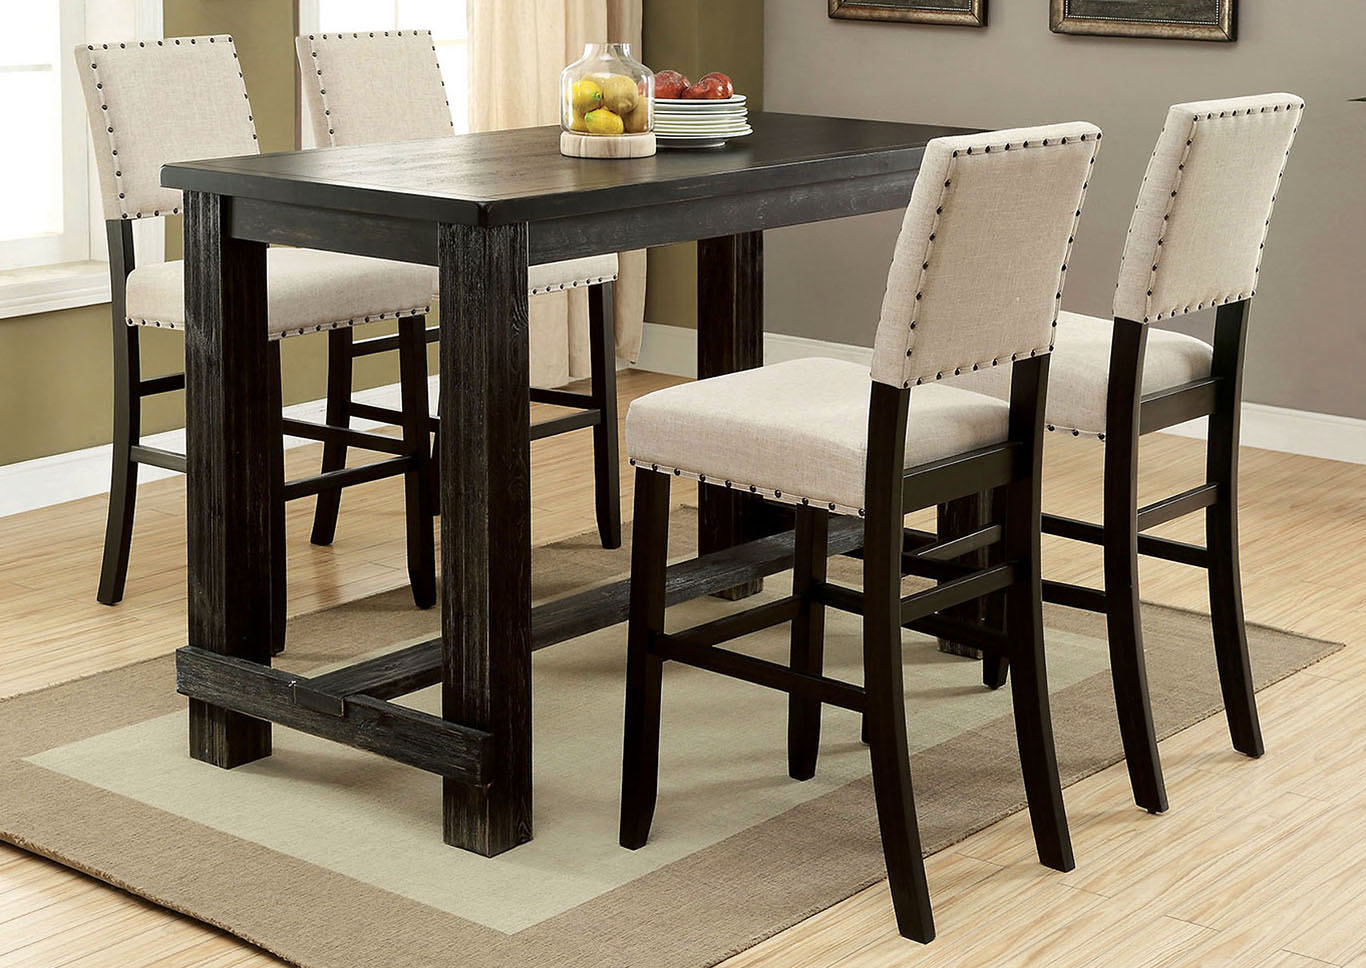 Ordinaire Sania Antique Black Counter Height Table W/4 Counter Height Chairs,Furniture  Of America